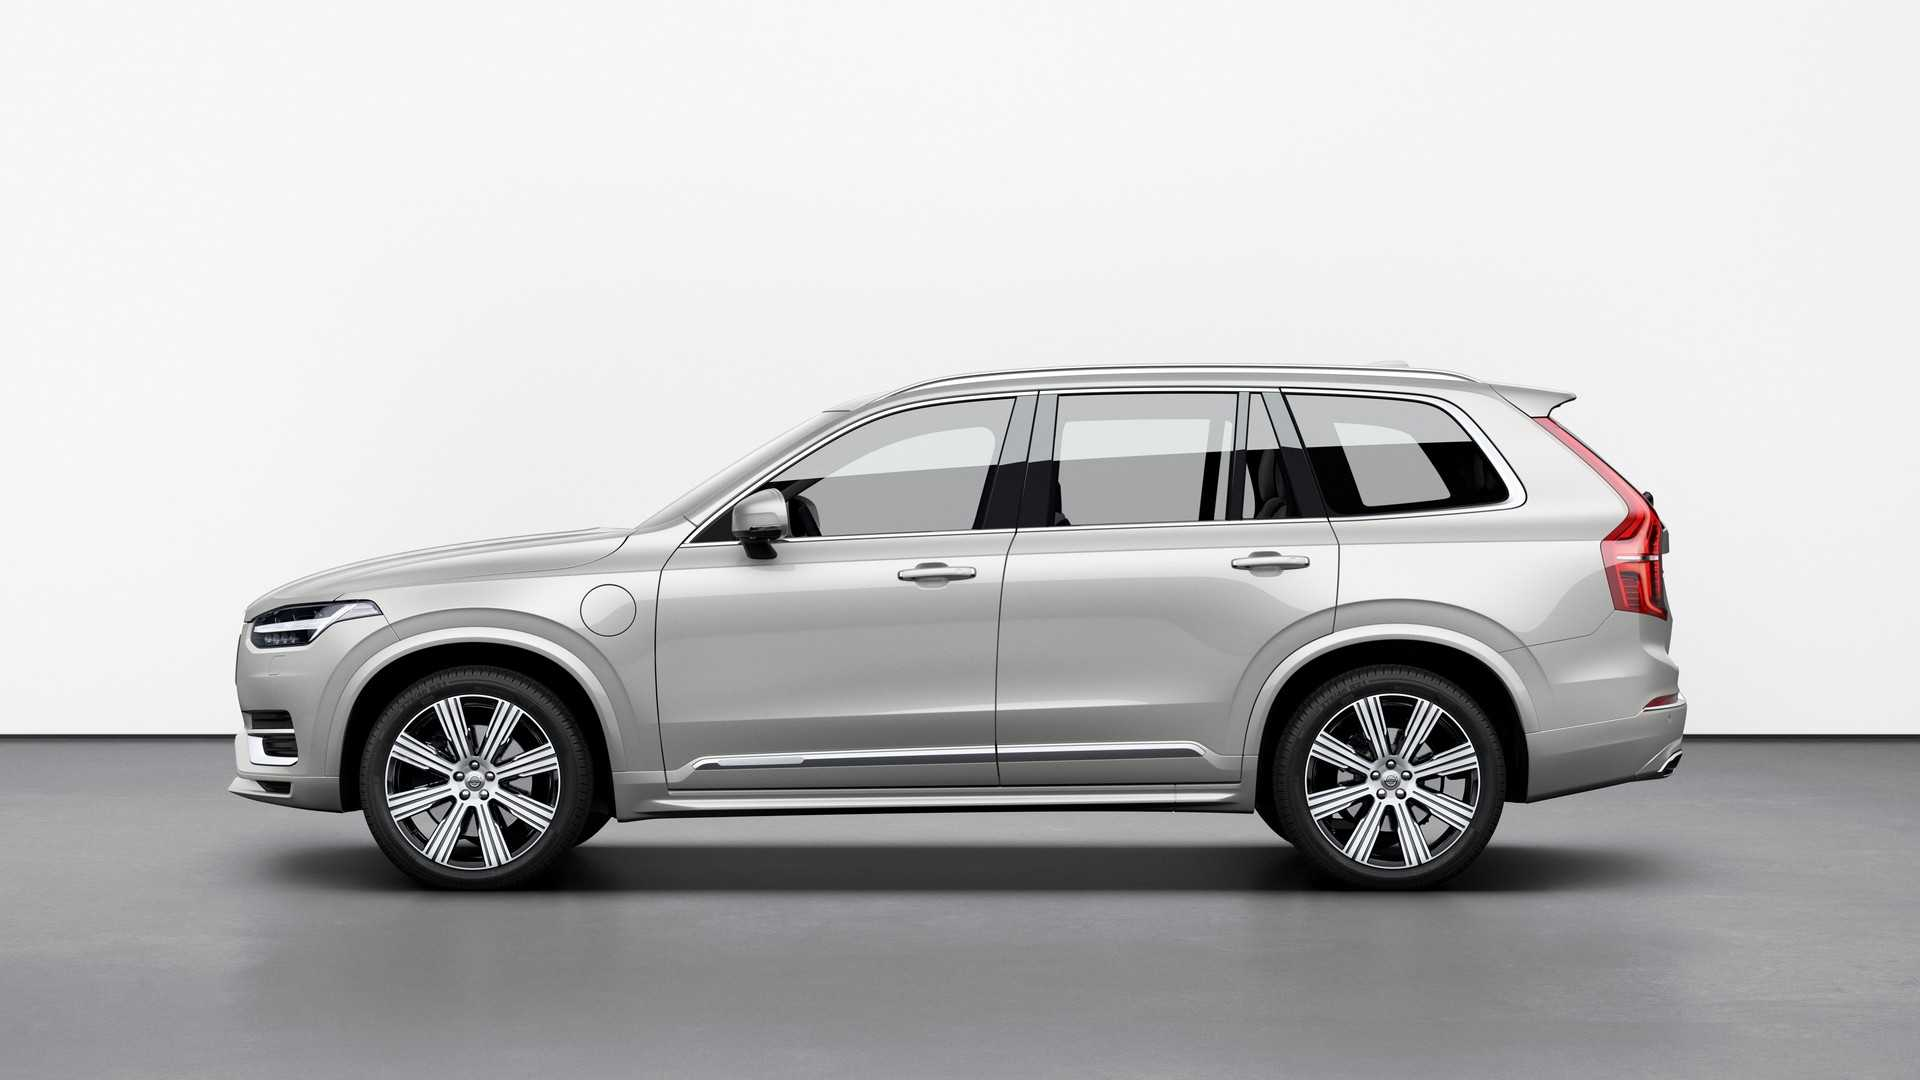 51 Gallery of Volvo S90 2020 Facelift Research New with Volvo S90 2020 Facelift